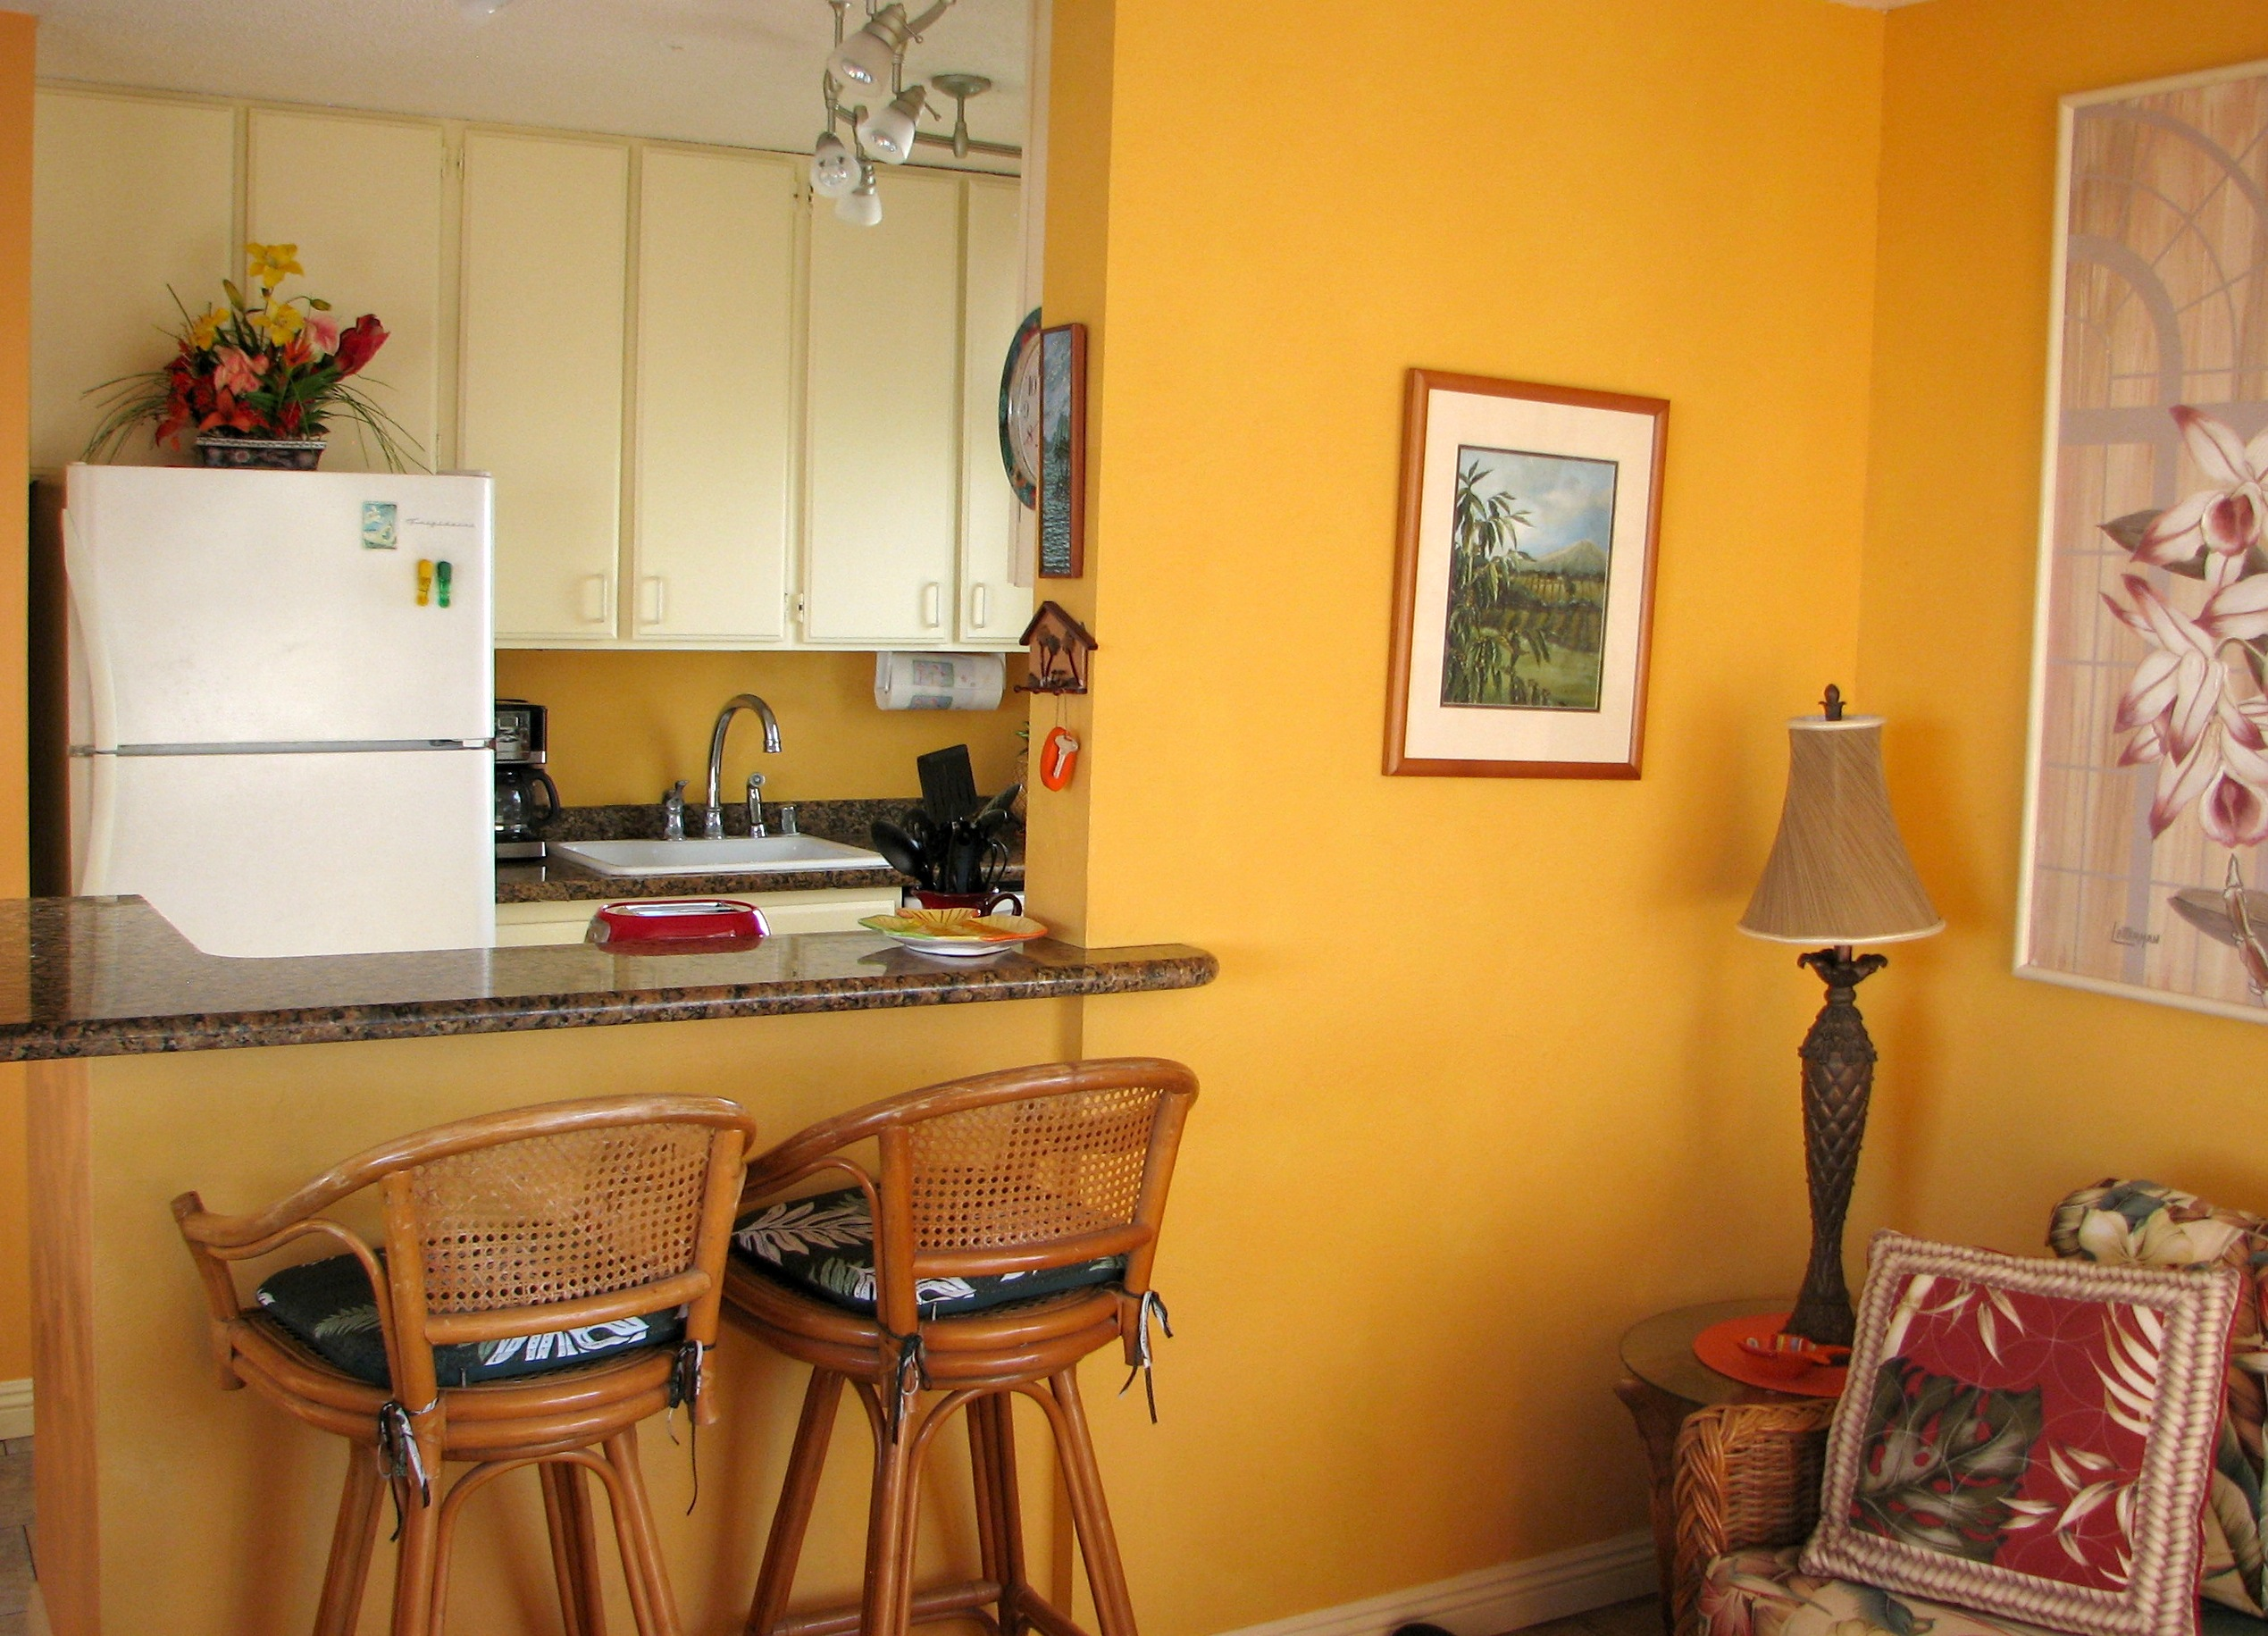 Remodeled granite kitchen with new appliances.